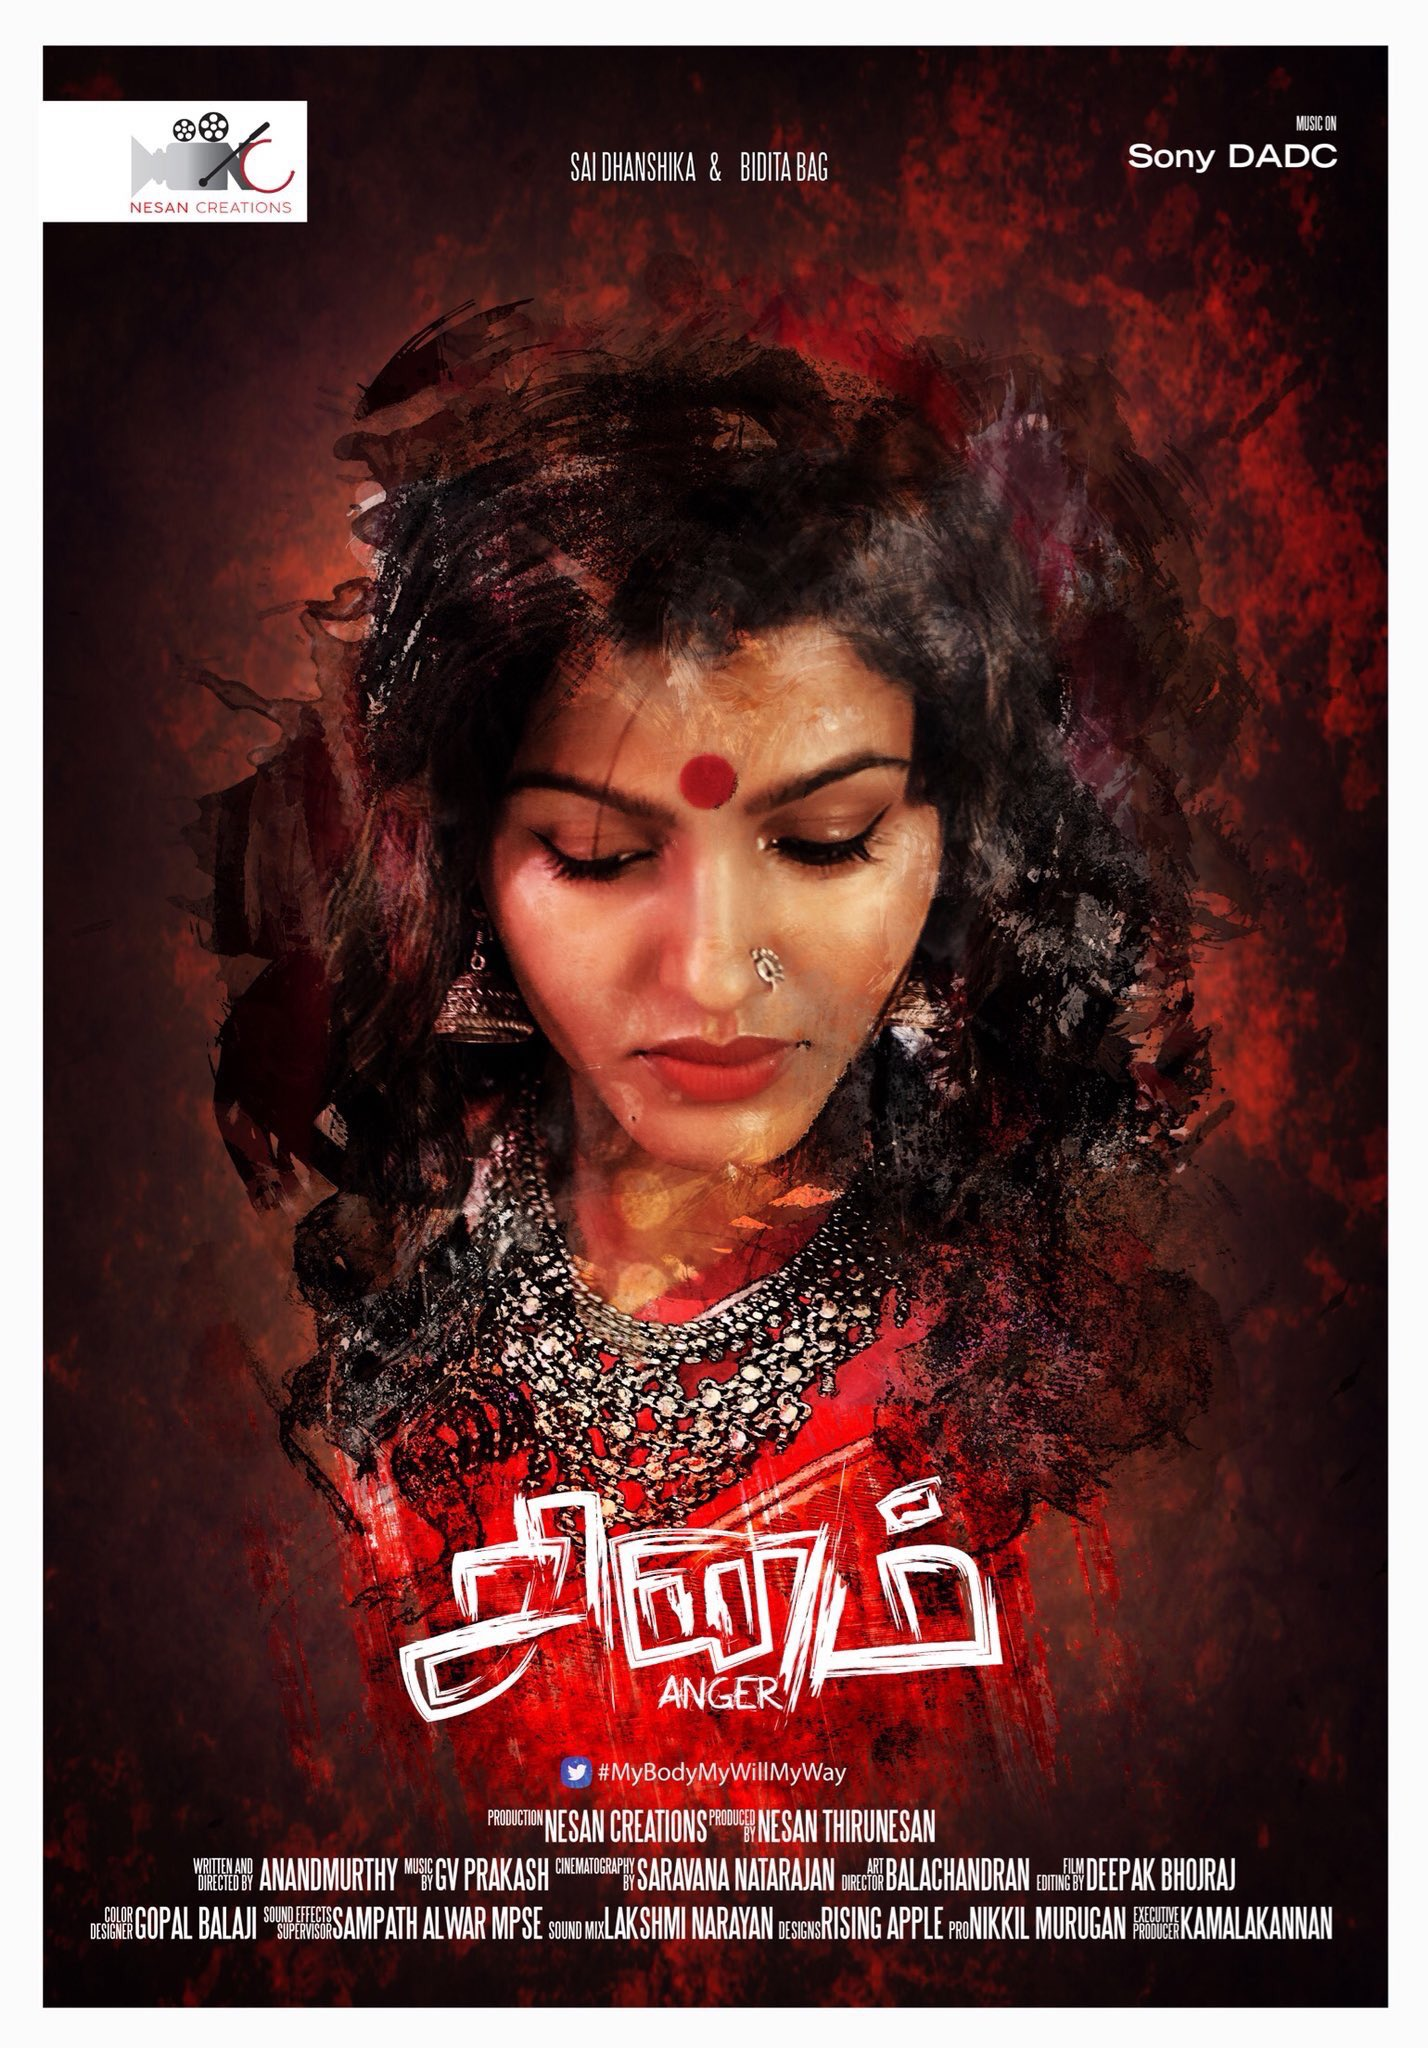 Down the line, @SaiDhanshika can definitely fill #RamyaKrishnan 's space and also earn a spot of her own! https://t.co/s9d6pFckDI